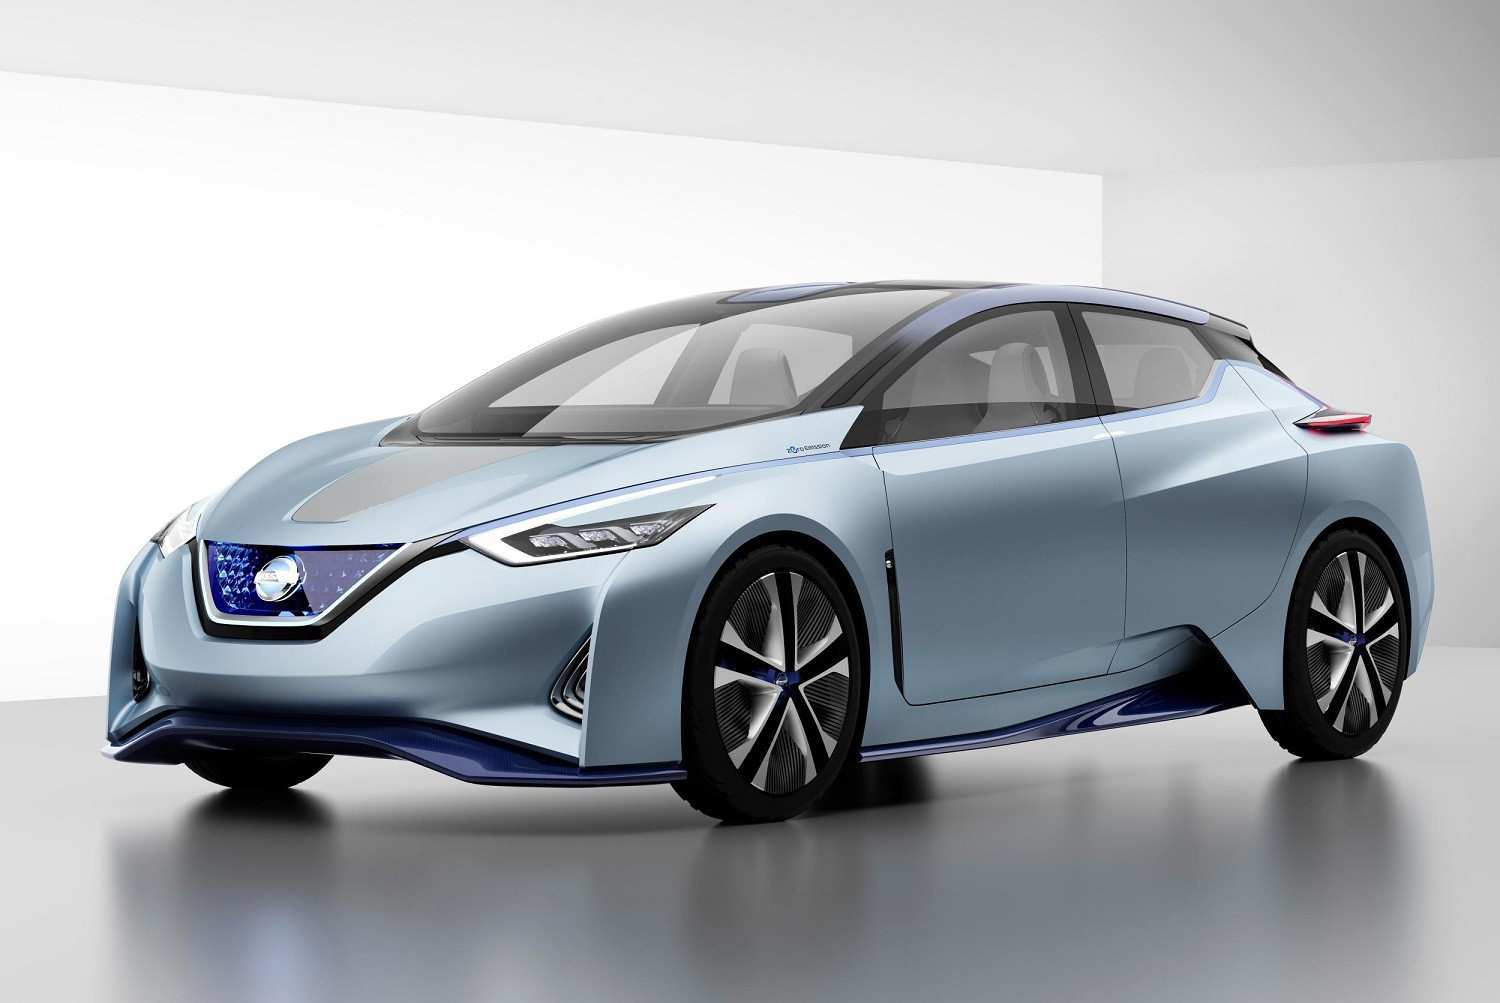 18 Gallery of 2020 Nissan Leaf Price New Review for 2020 Nissan Leaf Price